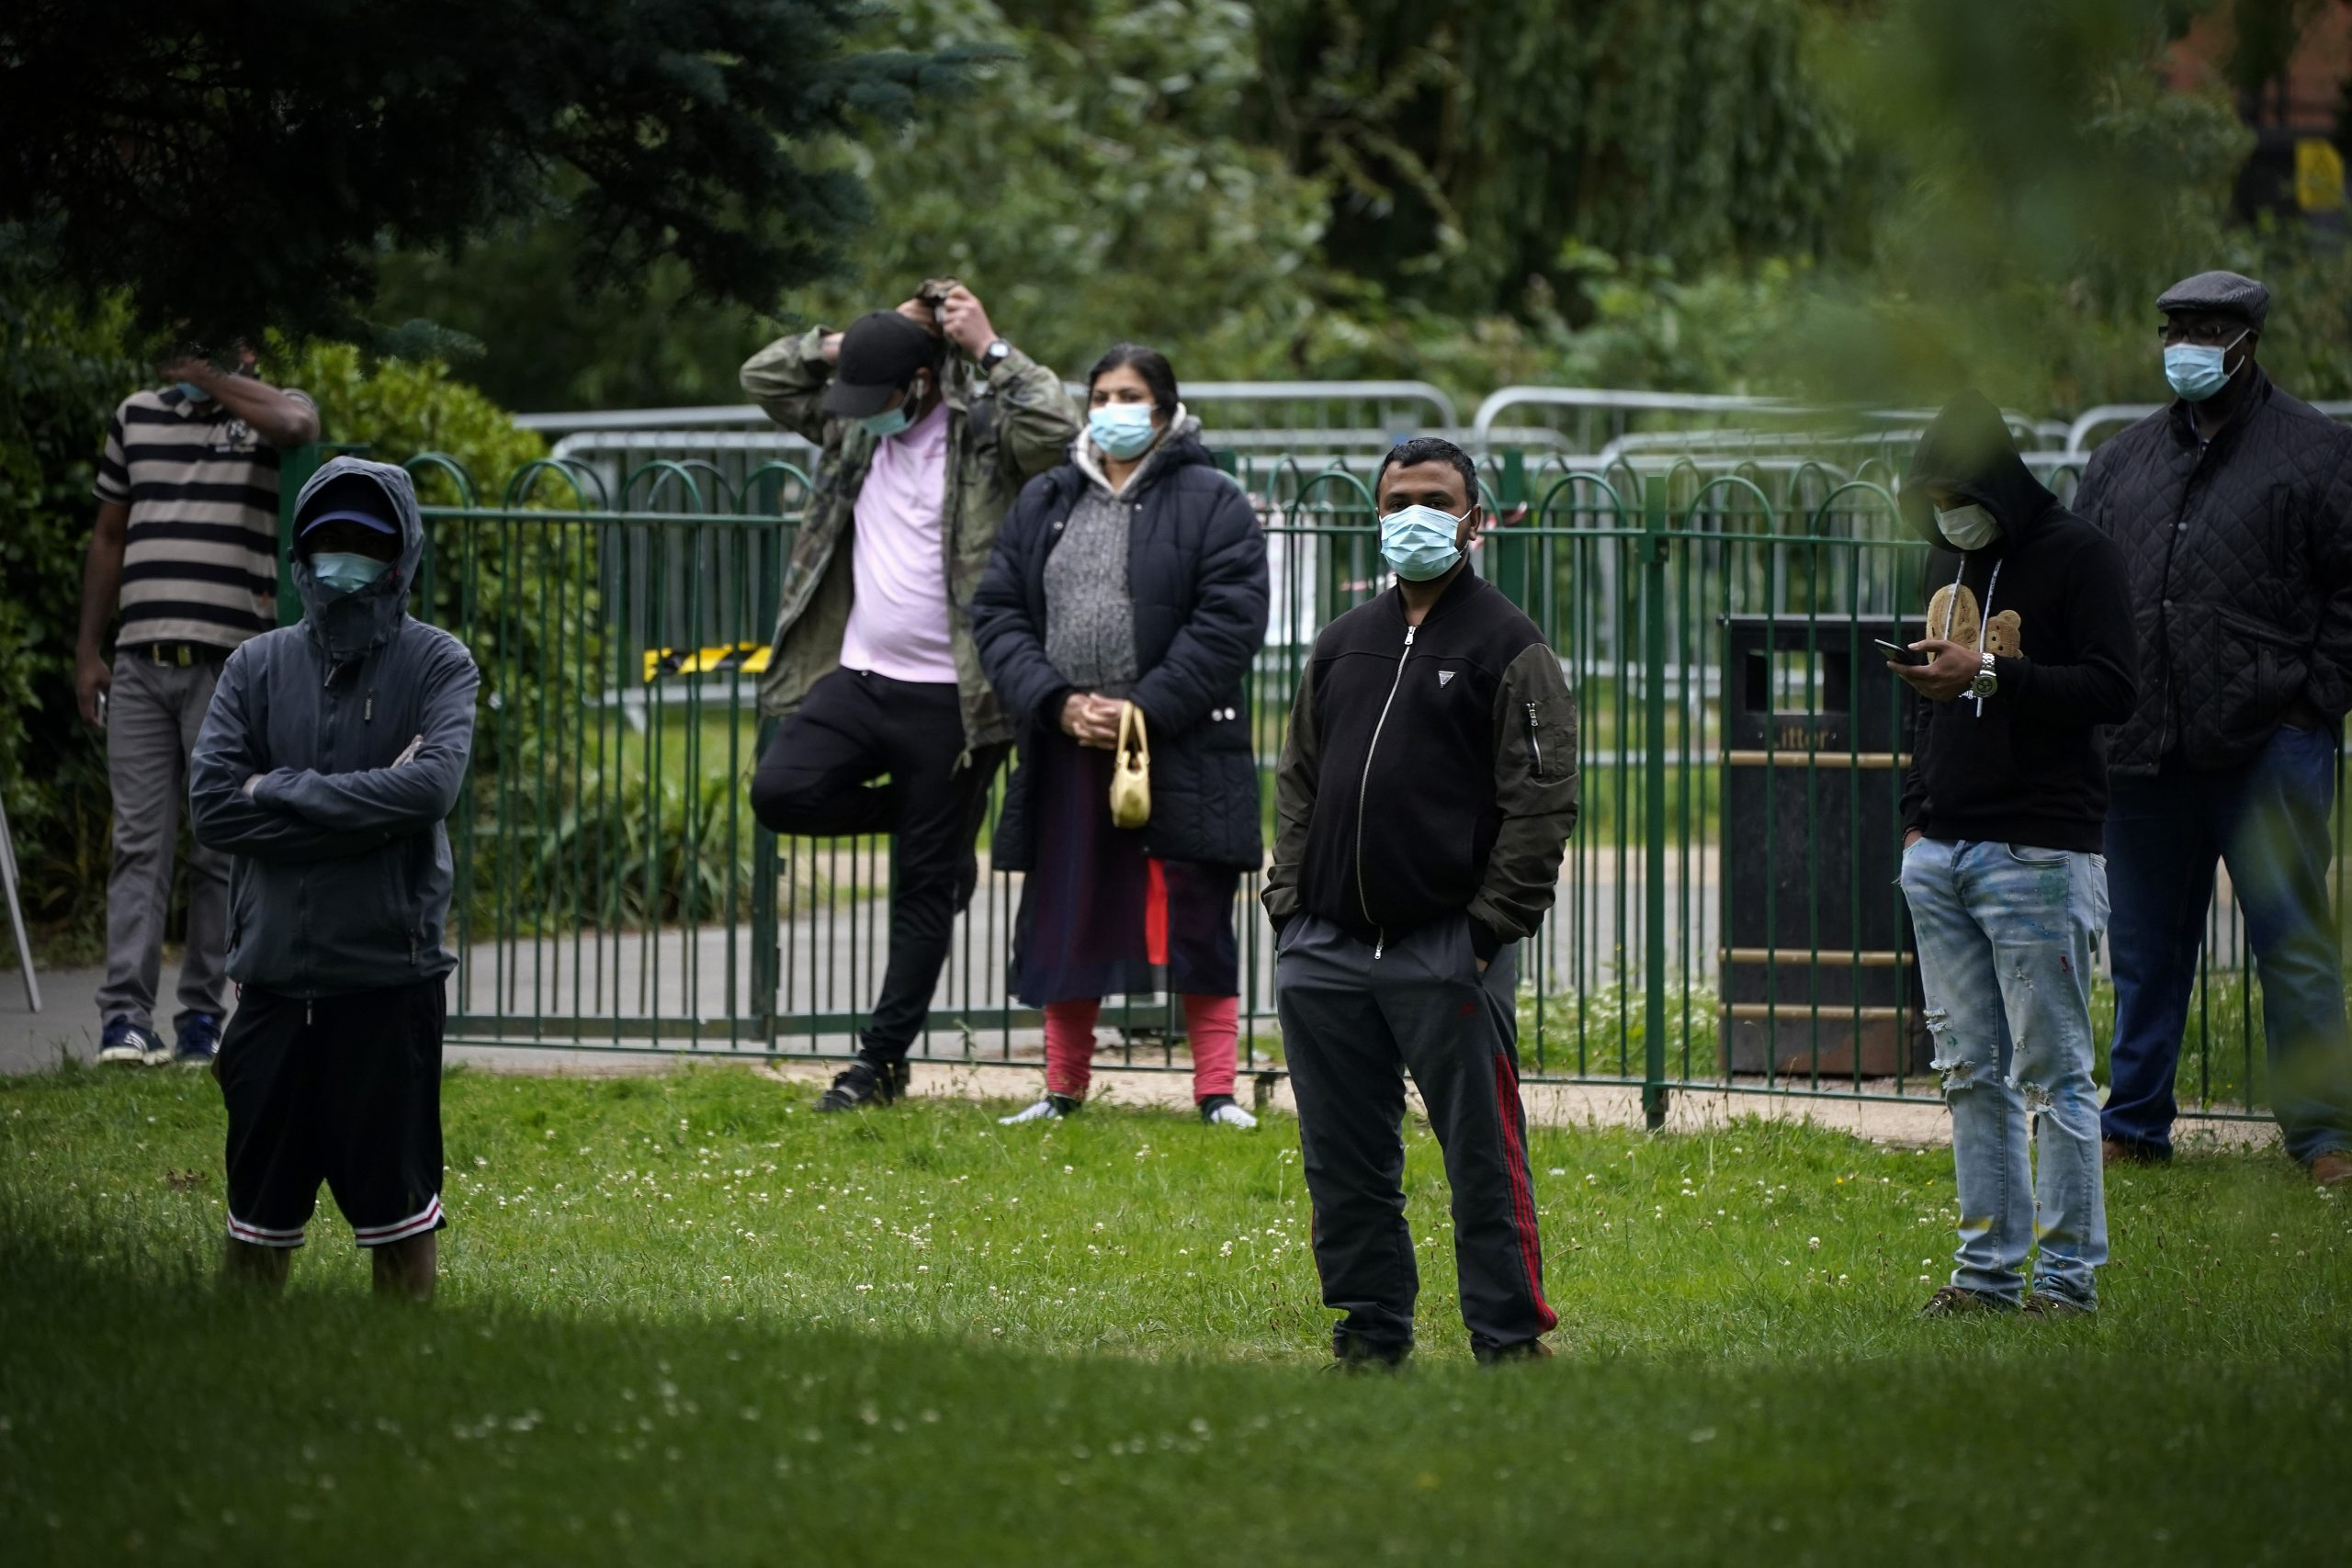 LEICESTER, ENGLAND - JUNE 29: People in face masks queue at a walk in coronavirus testing centre at Spinney Park on June 29, 2020 in Leicester, England. In a television appearance on Sunday, British Home Secretary Priti Patel confirmed the government was considering a local lockdown after a spike in coronavirus cases in the city. The city's mayor has said that Pubs and restaurants in Leicester may stay closed for two more weeks due to a recent surge in coronavirus cases. (Photo by Christopher Furlong/Getty Images)